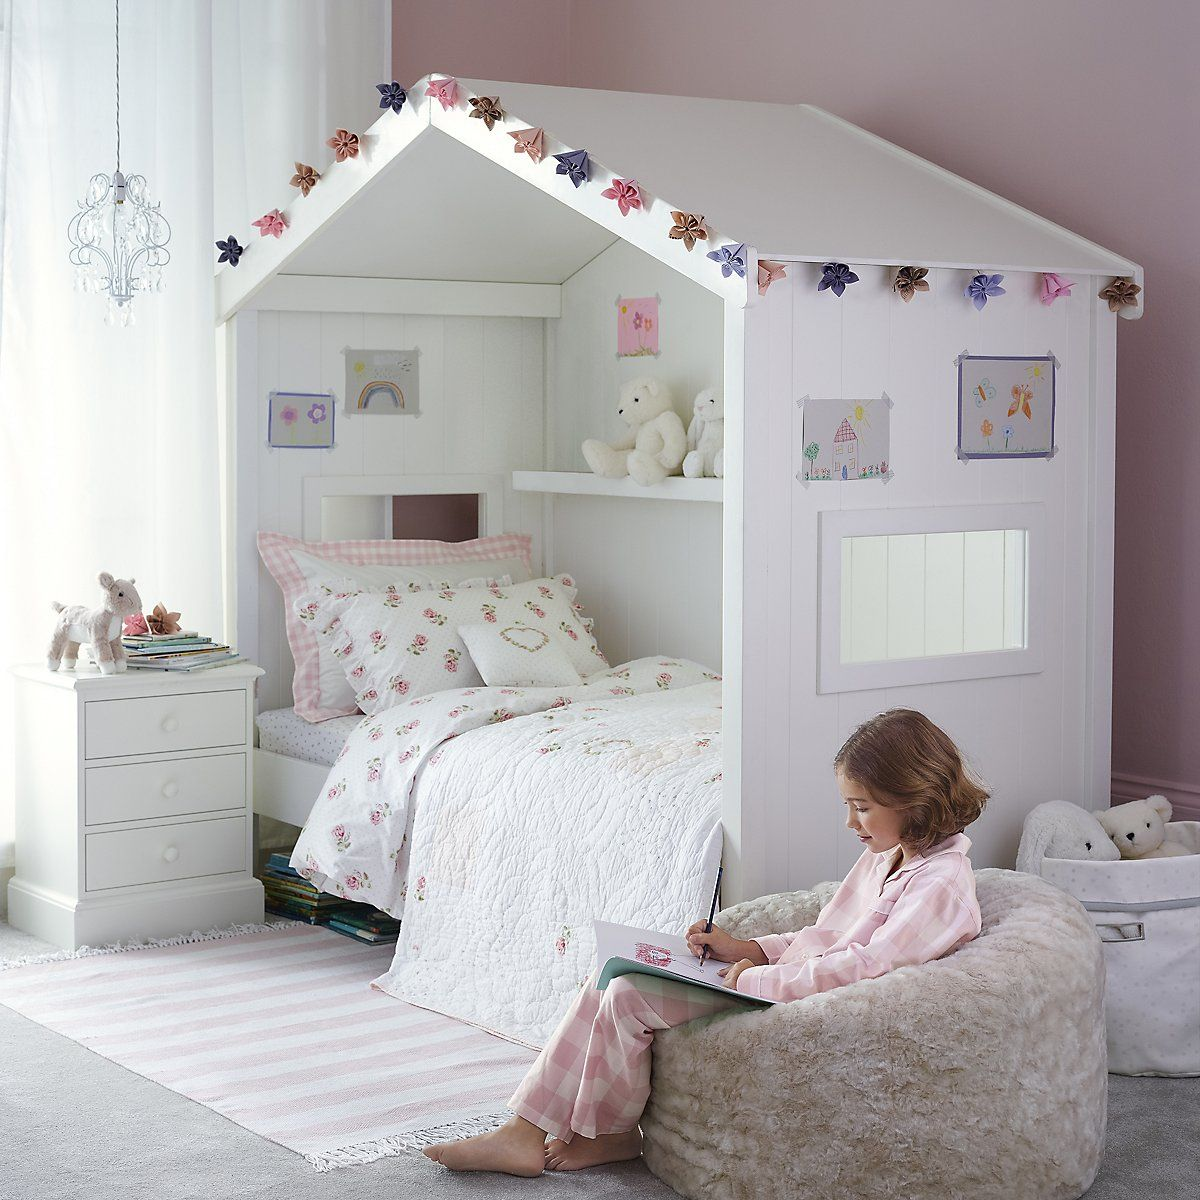 Classic Little White Day Bed Beds Furniture Home The White Company Uk Kids Bedroom Decor Childrens Bedrooms Girls Bedroom